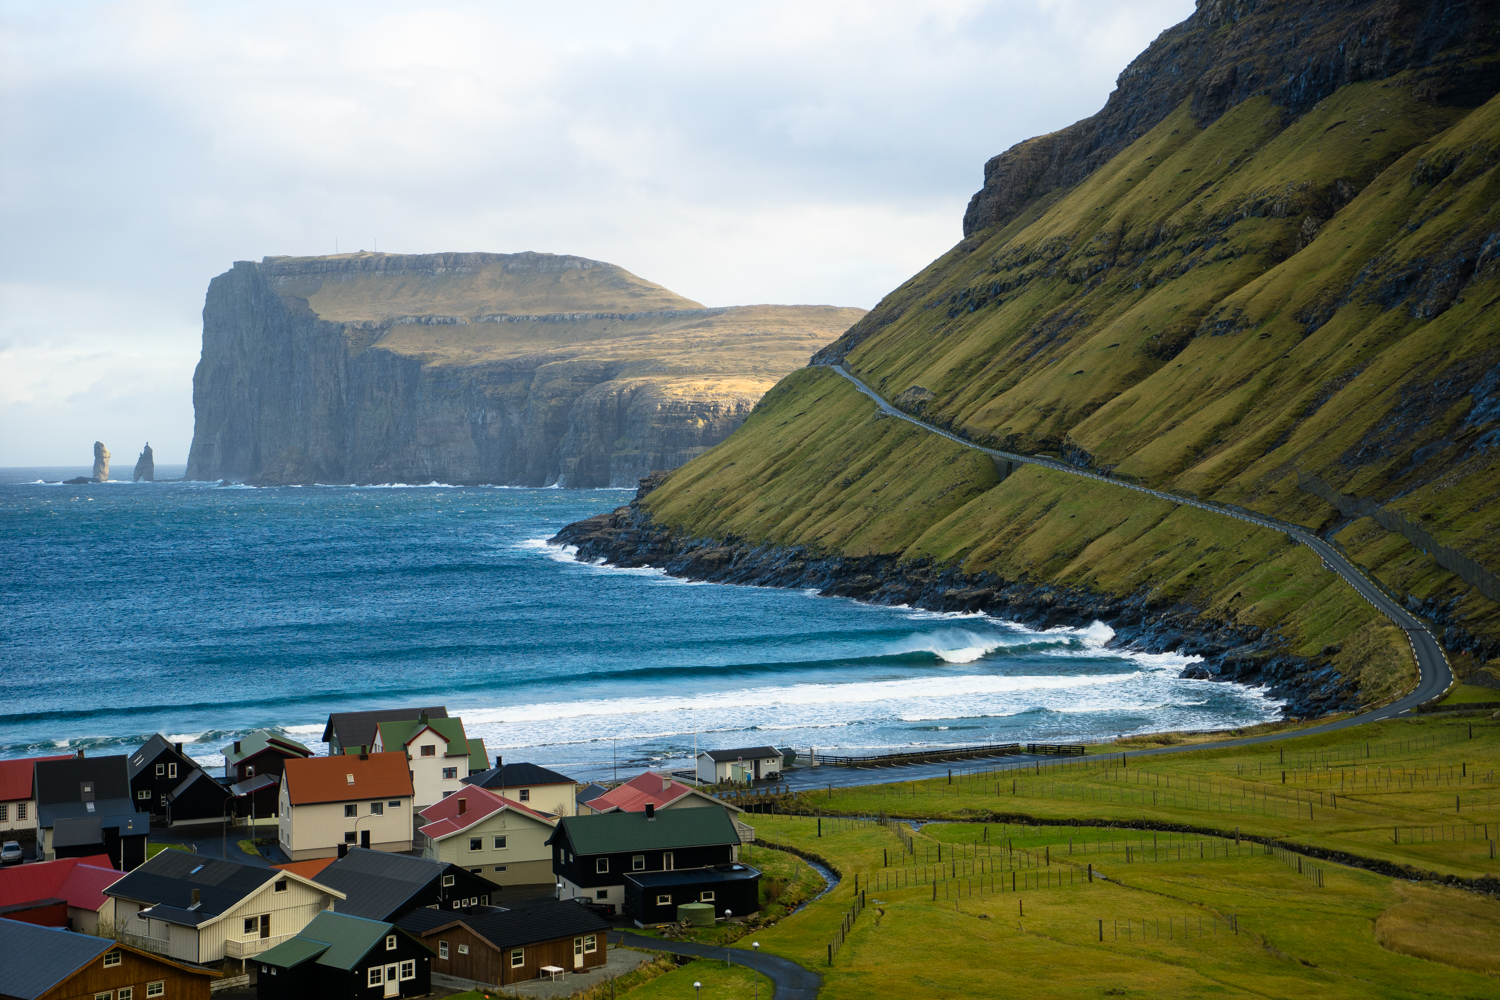 Fall 1080p Wallpaper Faroes A Film By Ben Weiland And Chris Burkard Film